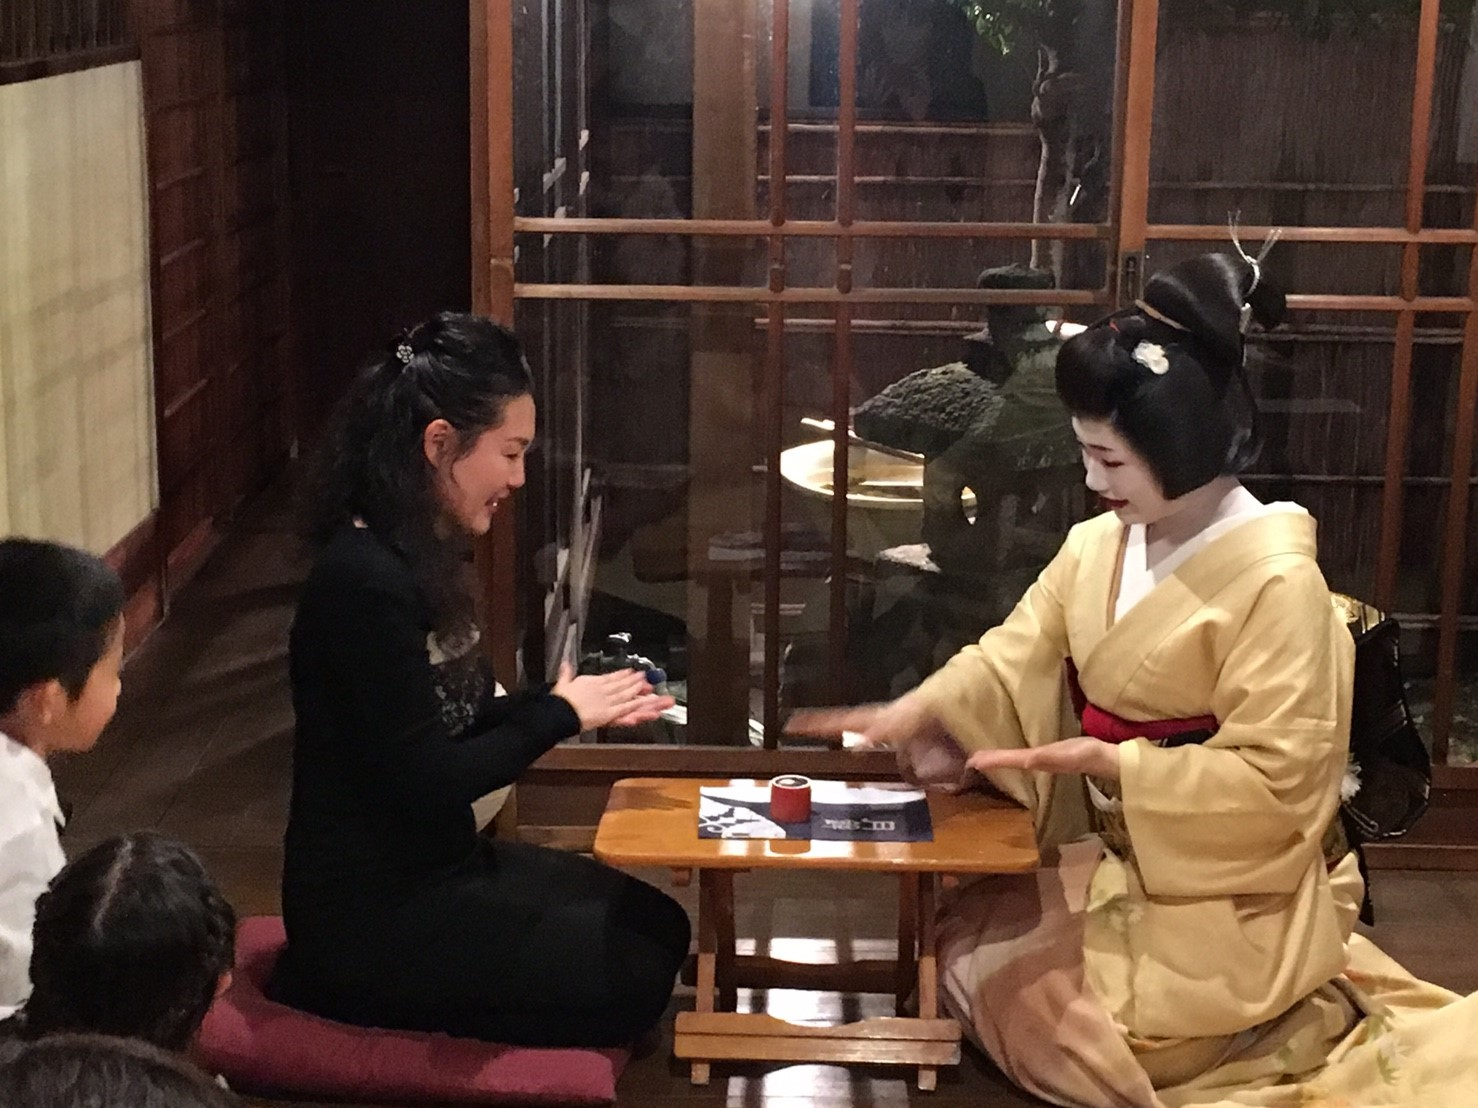 【end】【Nov. 28th】Geisha Dinner at Machiya house